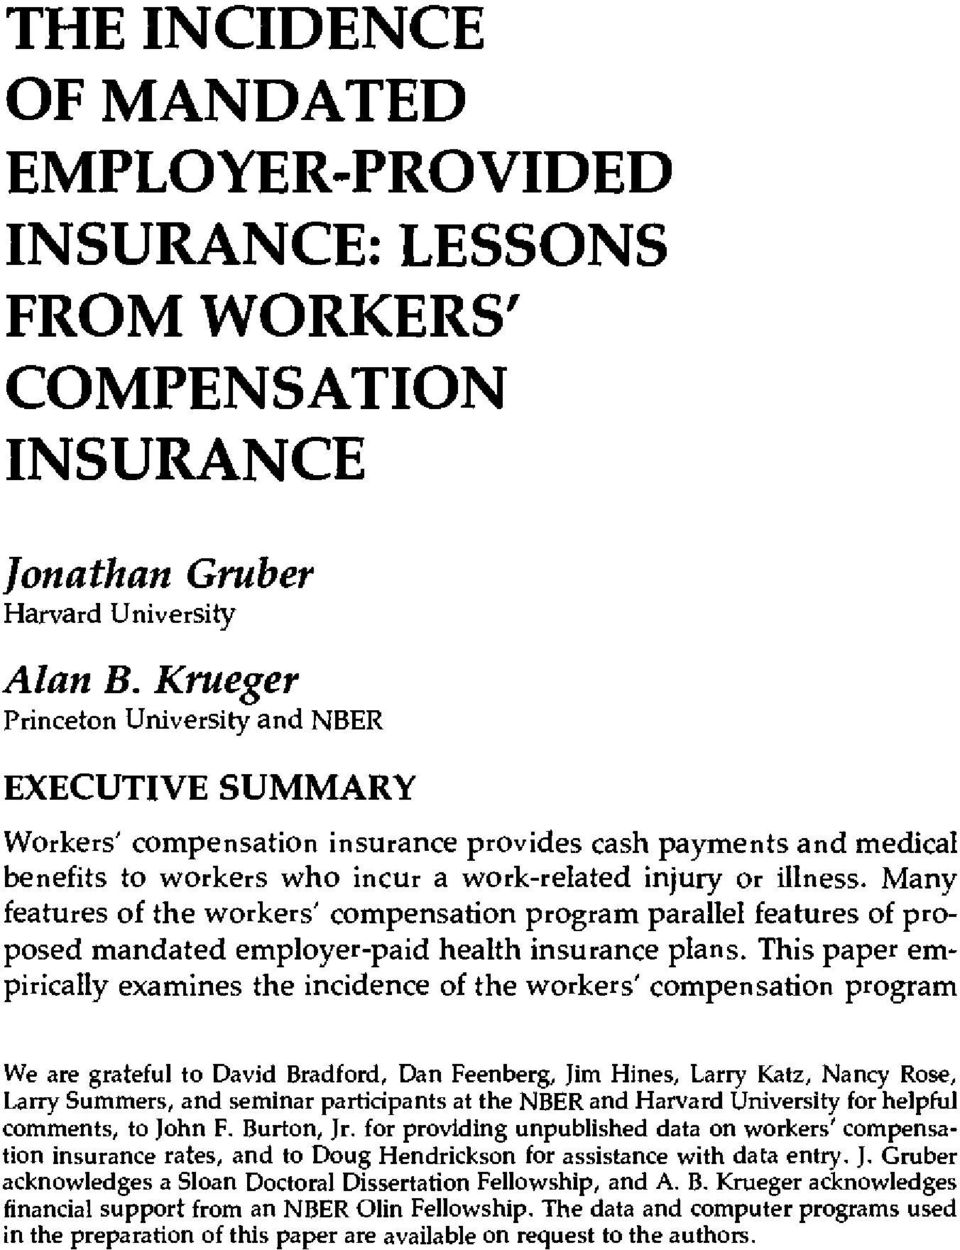 Many features of the workers' compensation program parallel features of proposed mandated employer-paid health insurance plans.